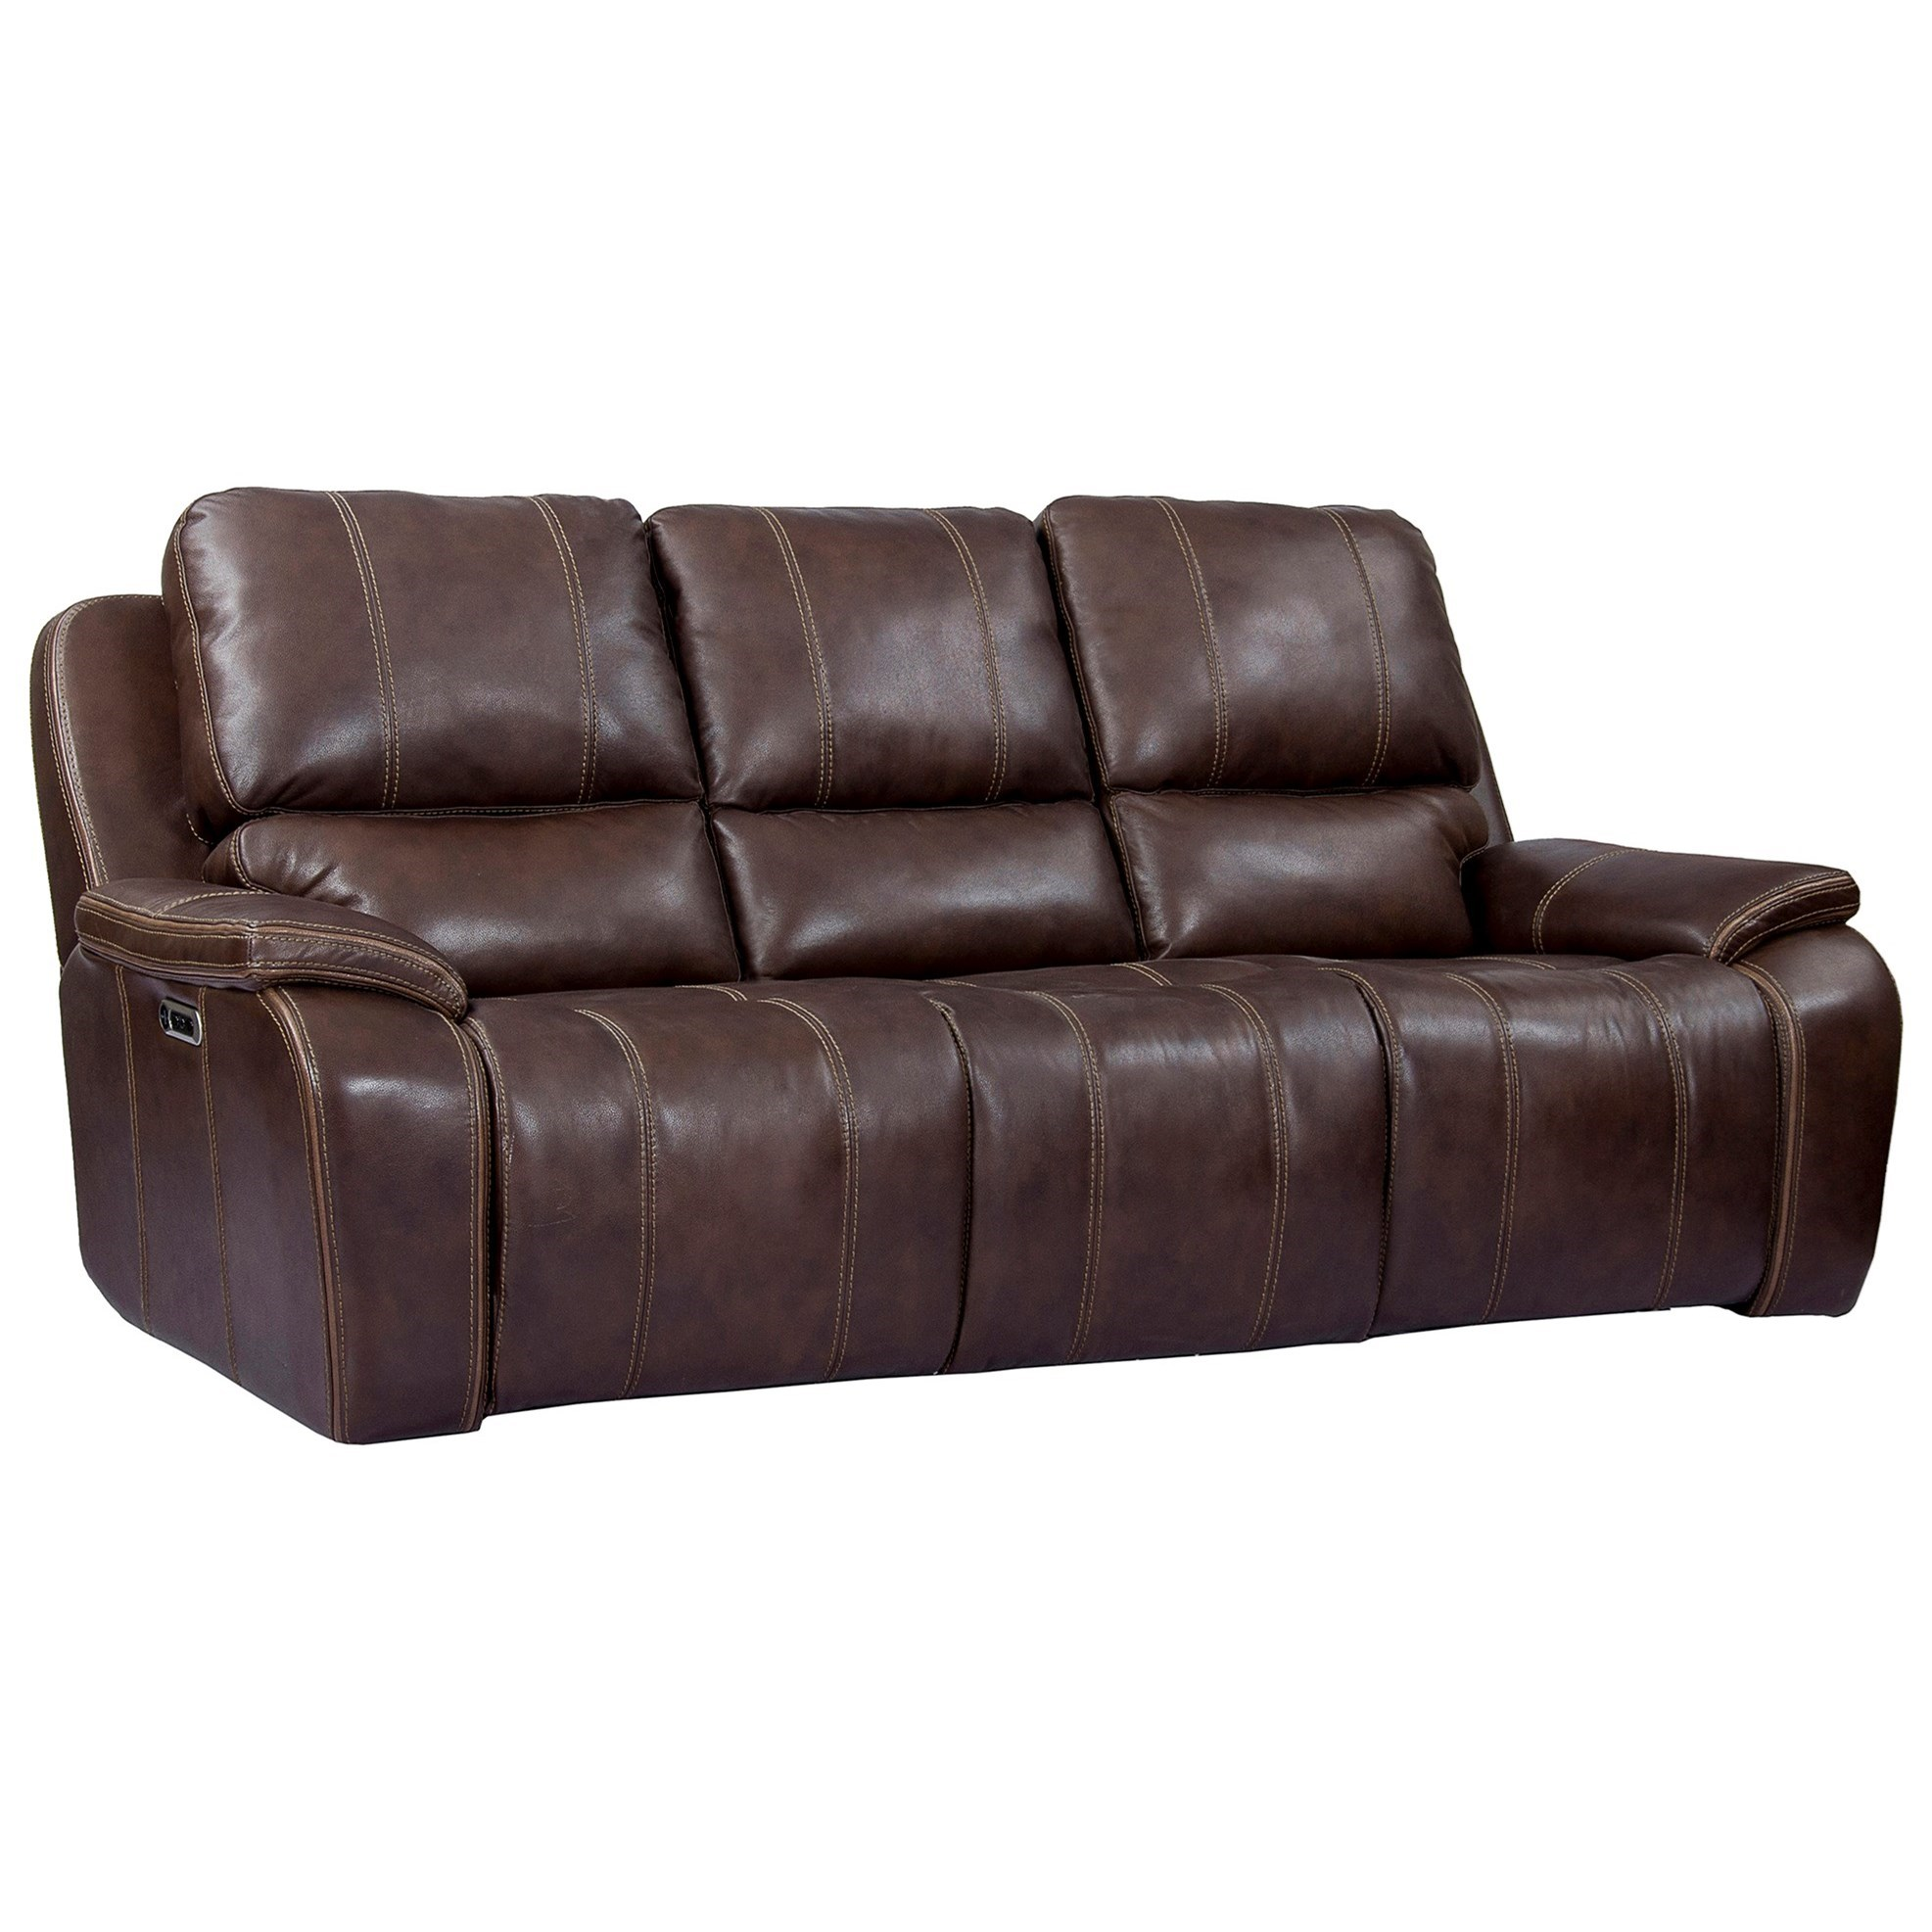 Potter SOFA DUAL REC PWR W/USB & PWR HDR by Parker Living at Suburban Furniture